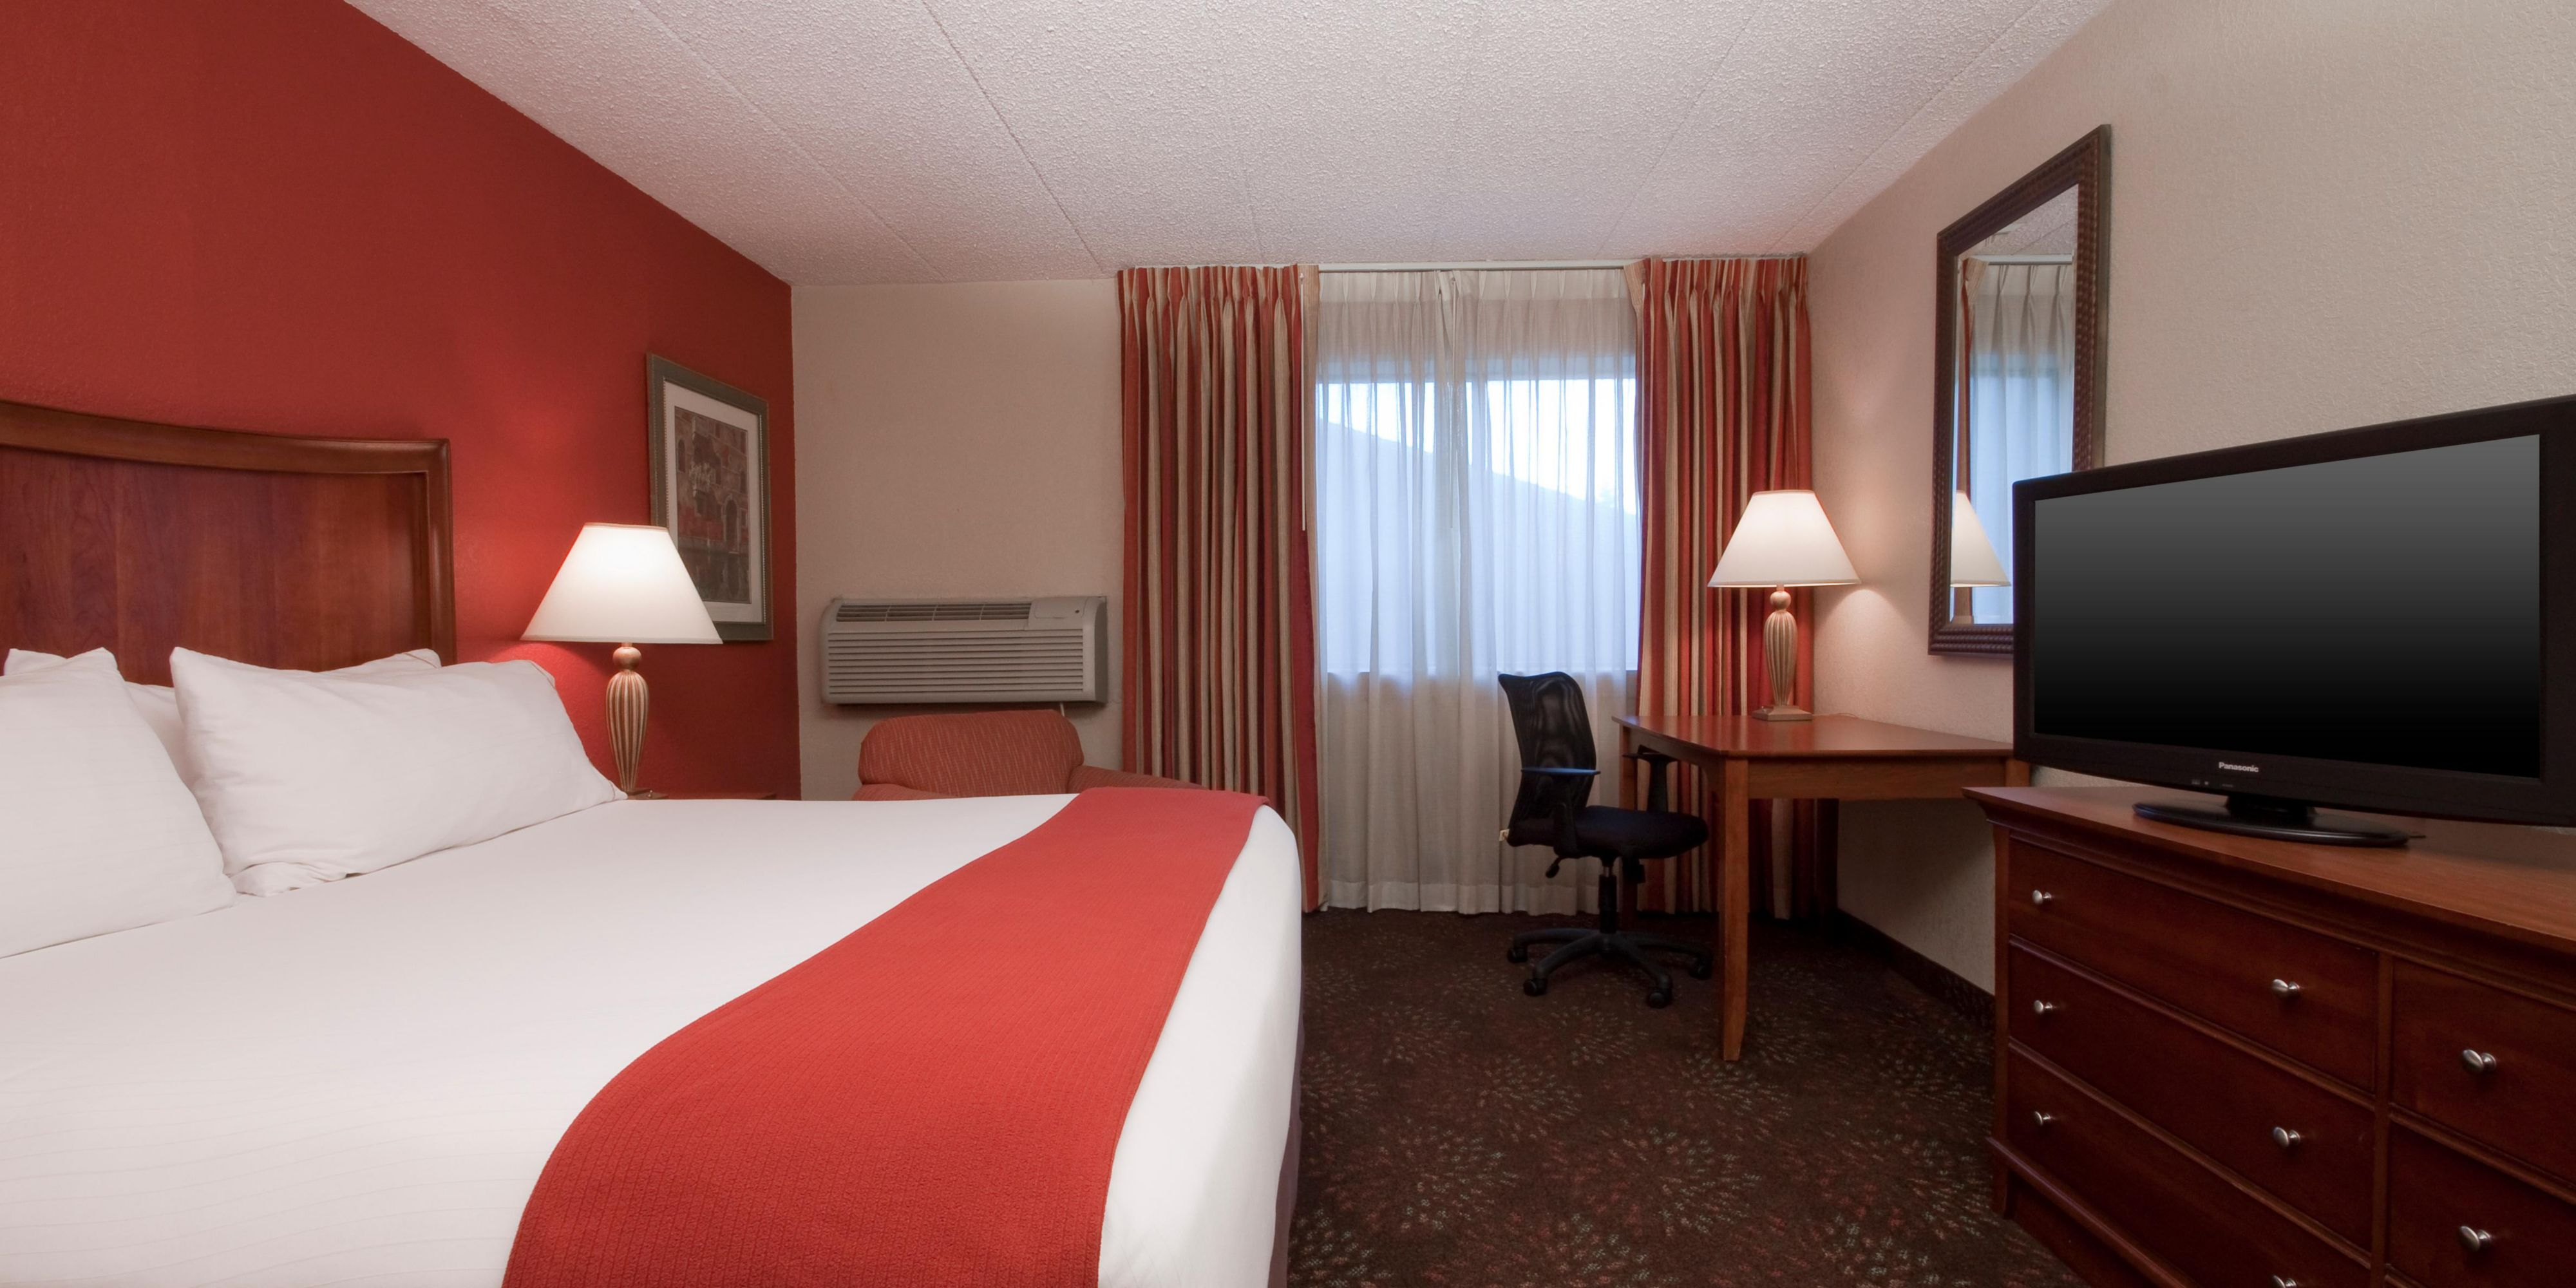 hotels in downers grove il near chicago holiday inn express